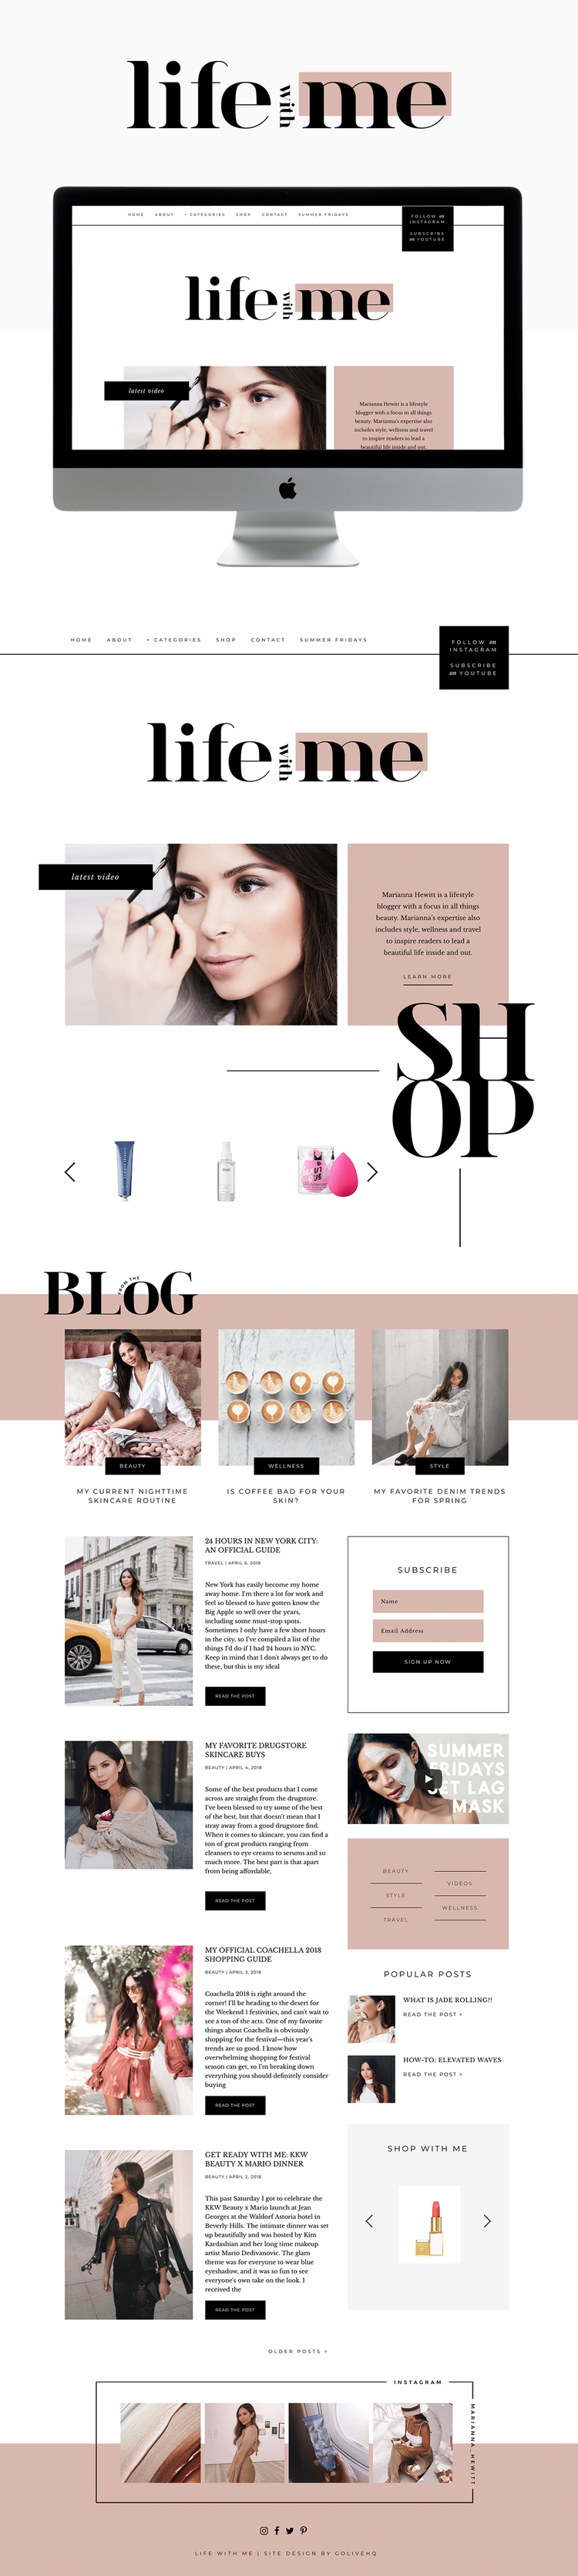 Best+Website+For+Lifestyle+and+Beauty+Blogger+Marianna+Hewwit+of+Life+With+Me+_+Design+By+Go+Live+HQ (1).png